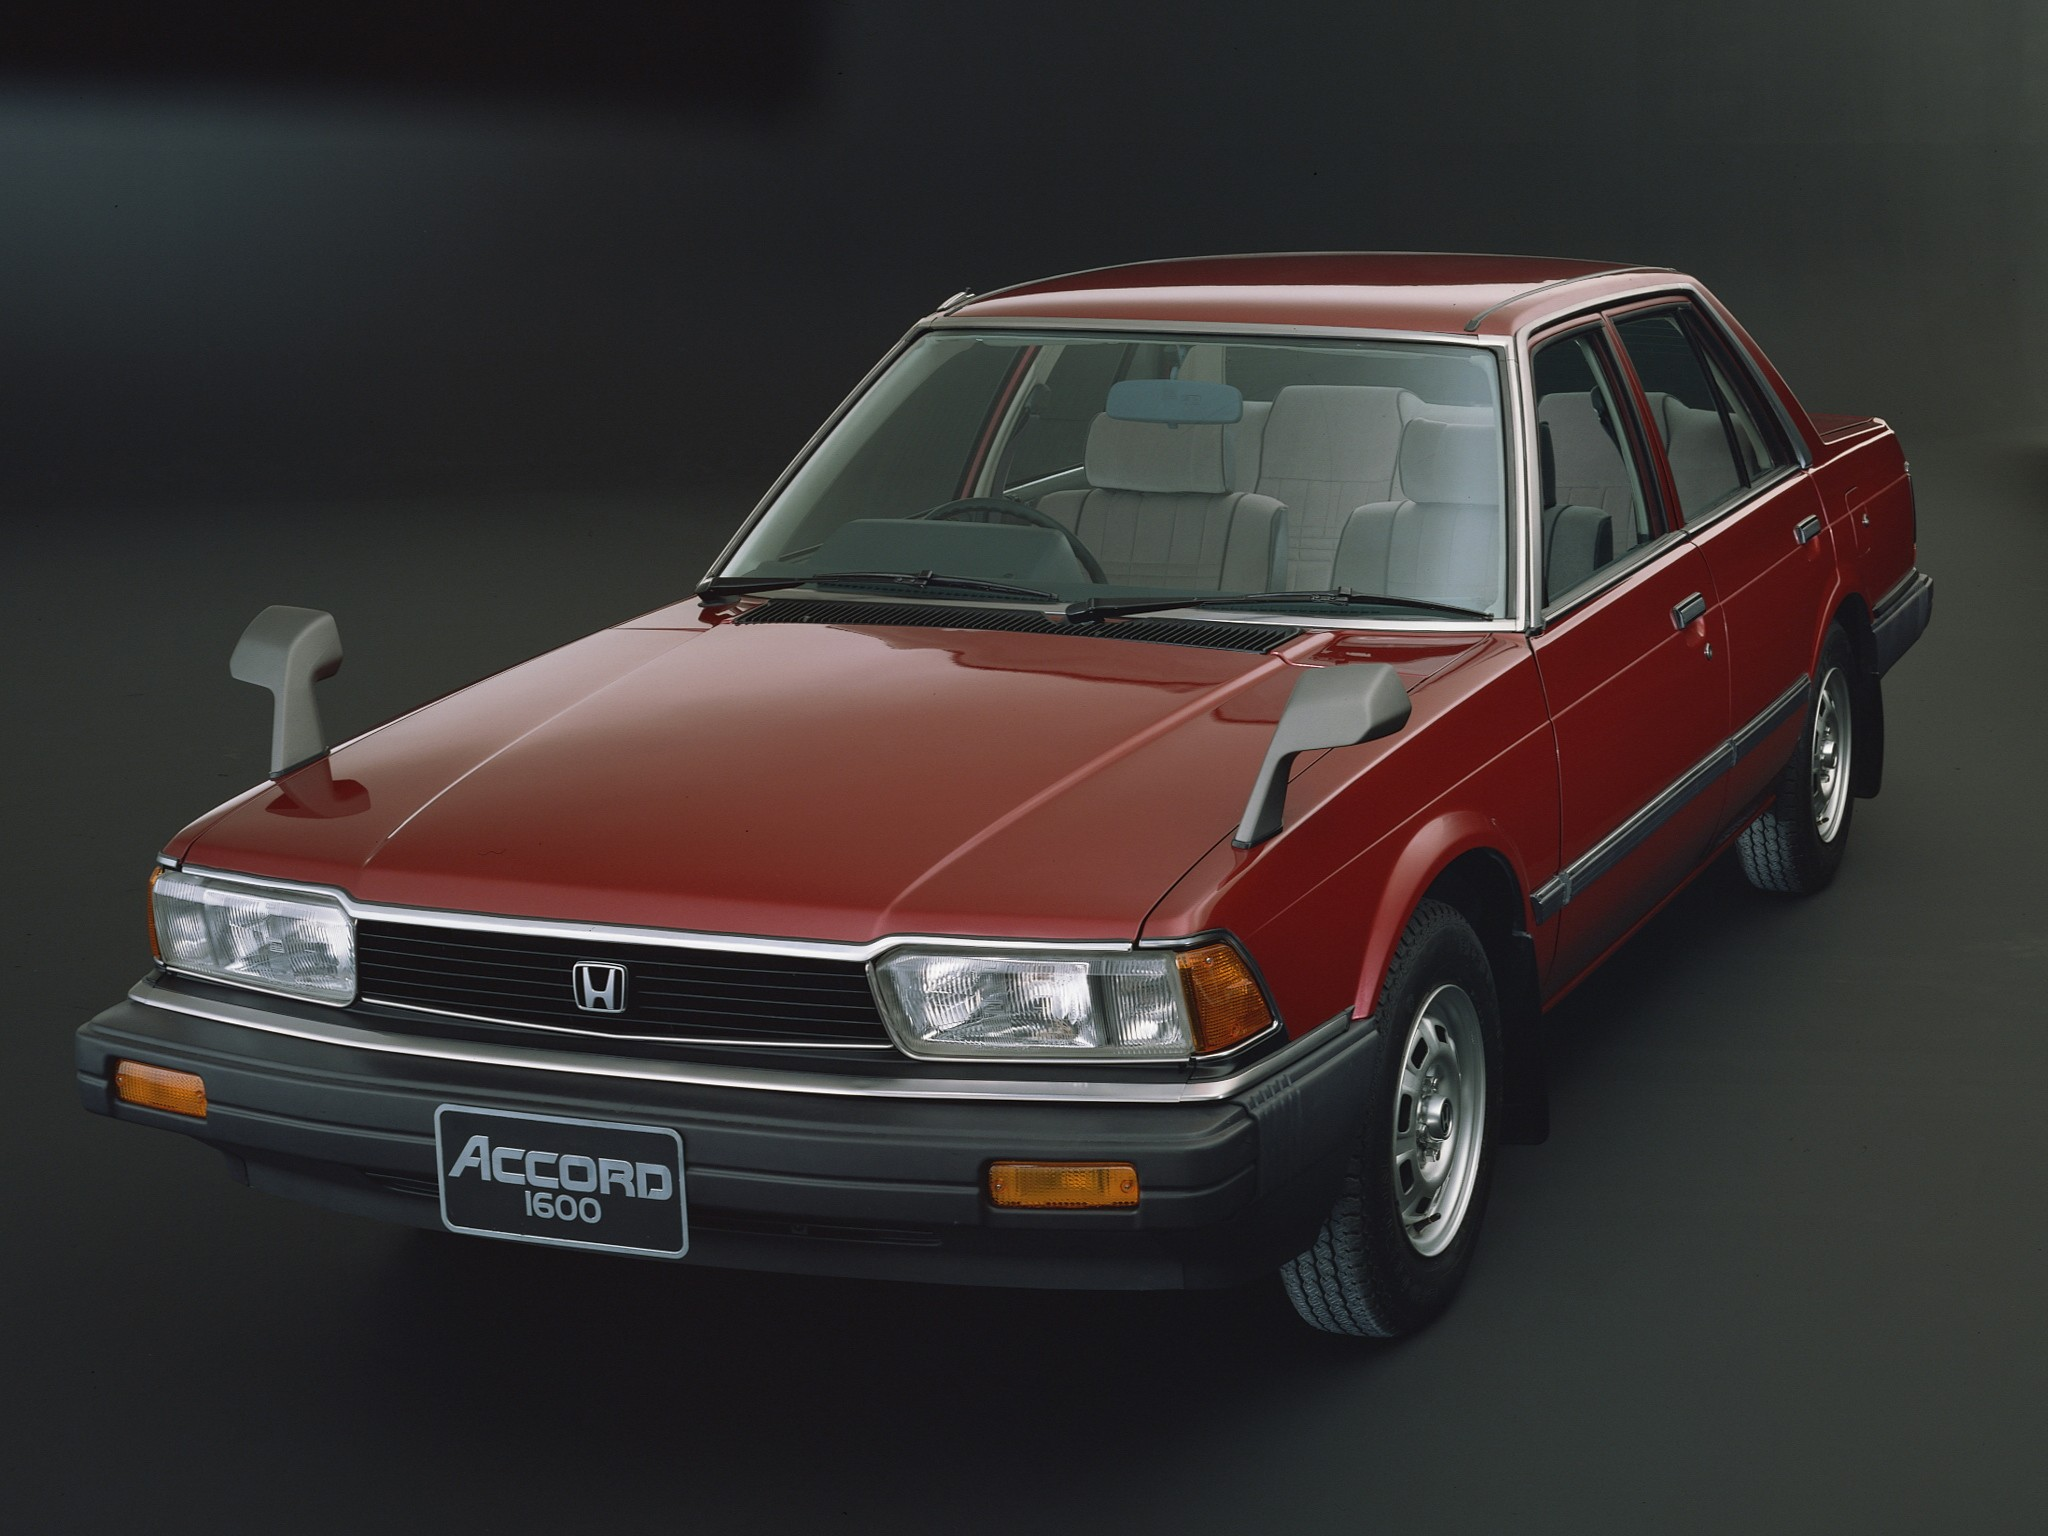 HONDA Accord 4 Doors specs & photos - 1981, 1982, 1983 ...